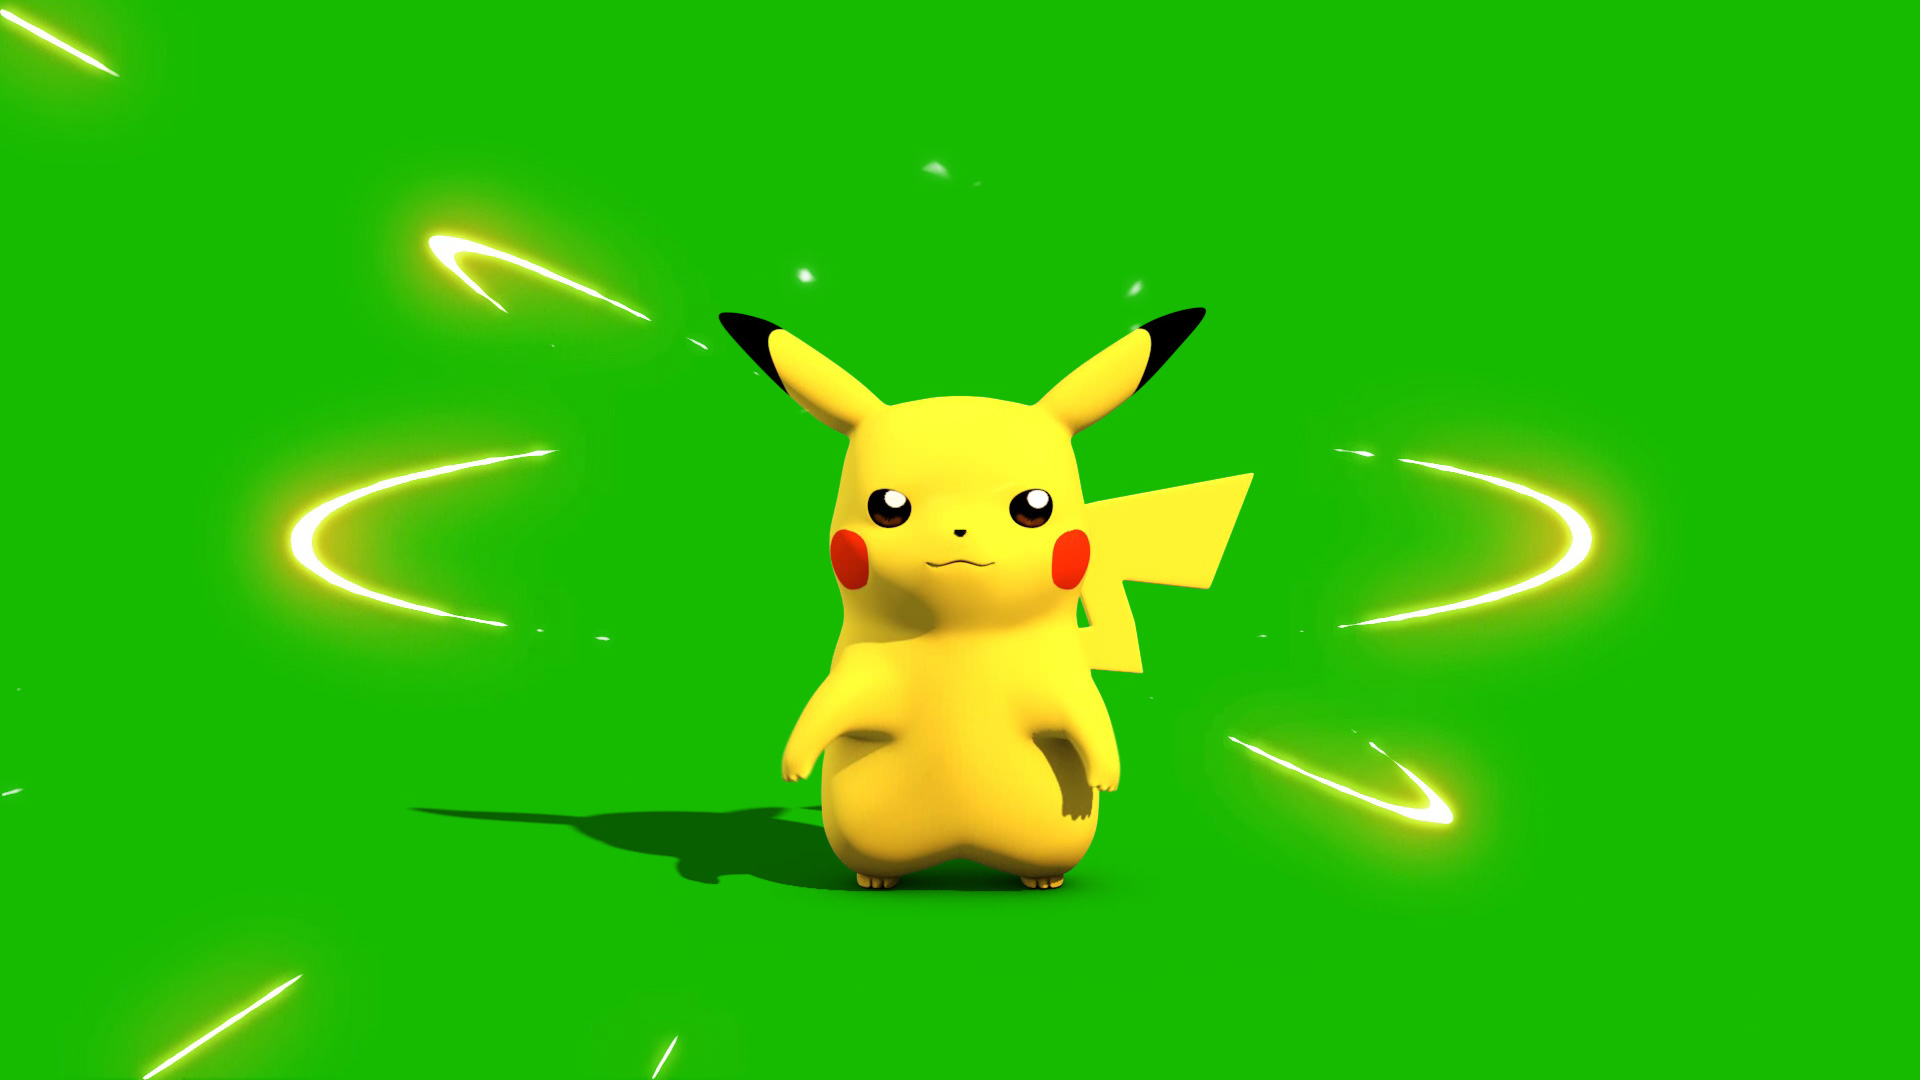 Hd Wallpapers 1080p Nature Animated Pokemon Go Pikachu 3d Model Animated Pixelboom